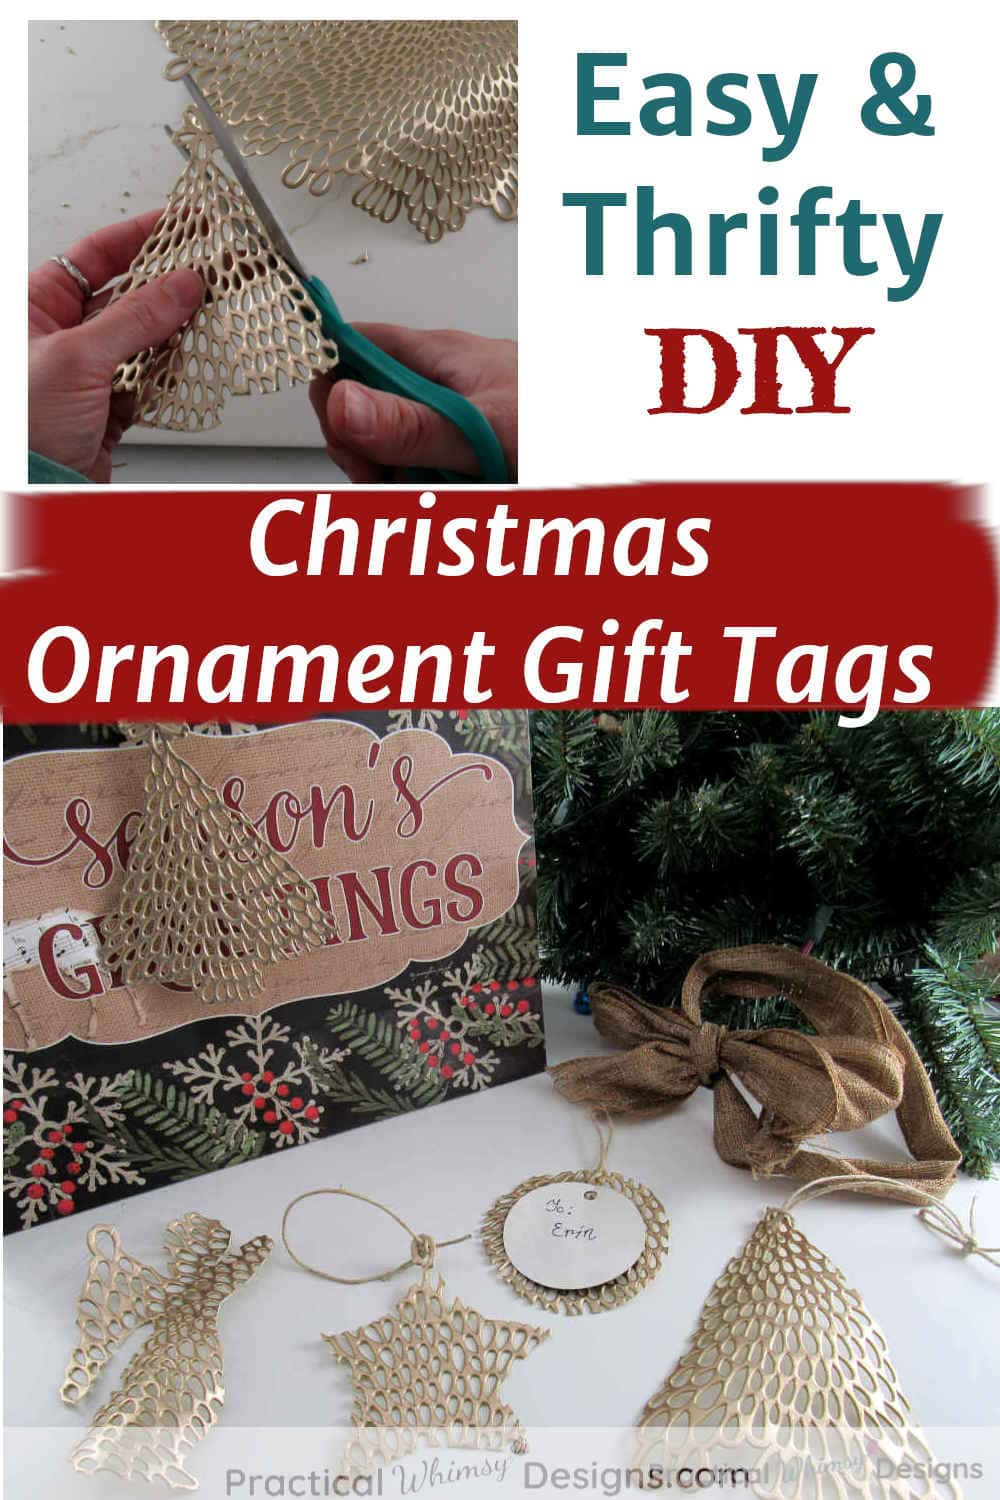 Easy and thrifty DIY Christmas ornament gift tags